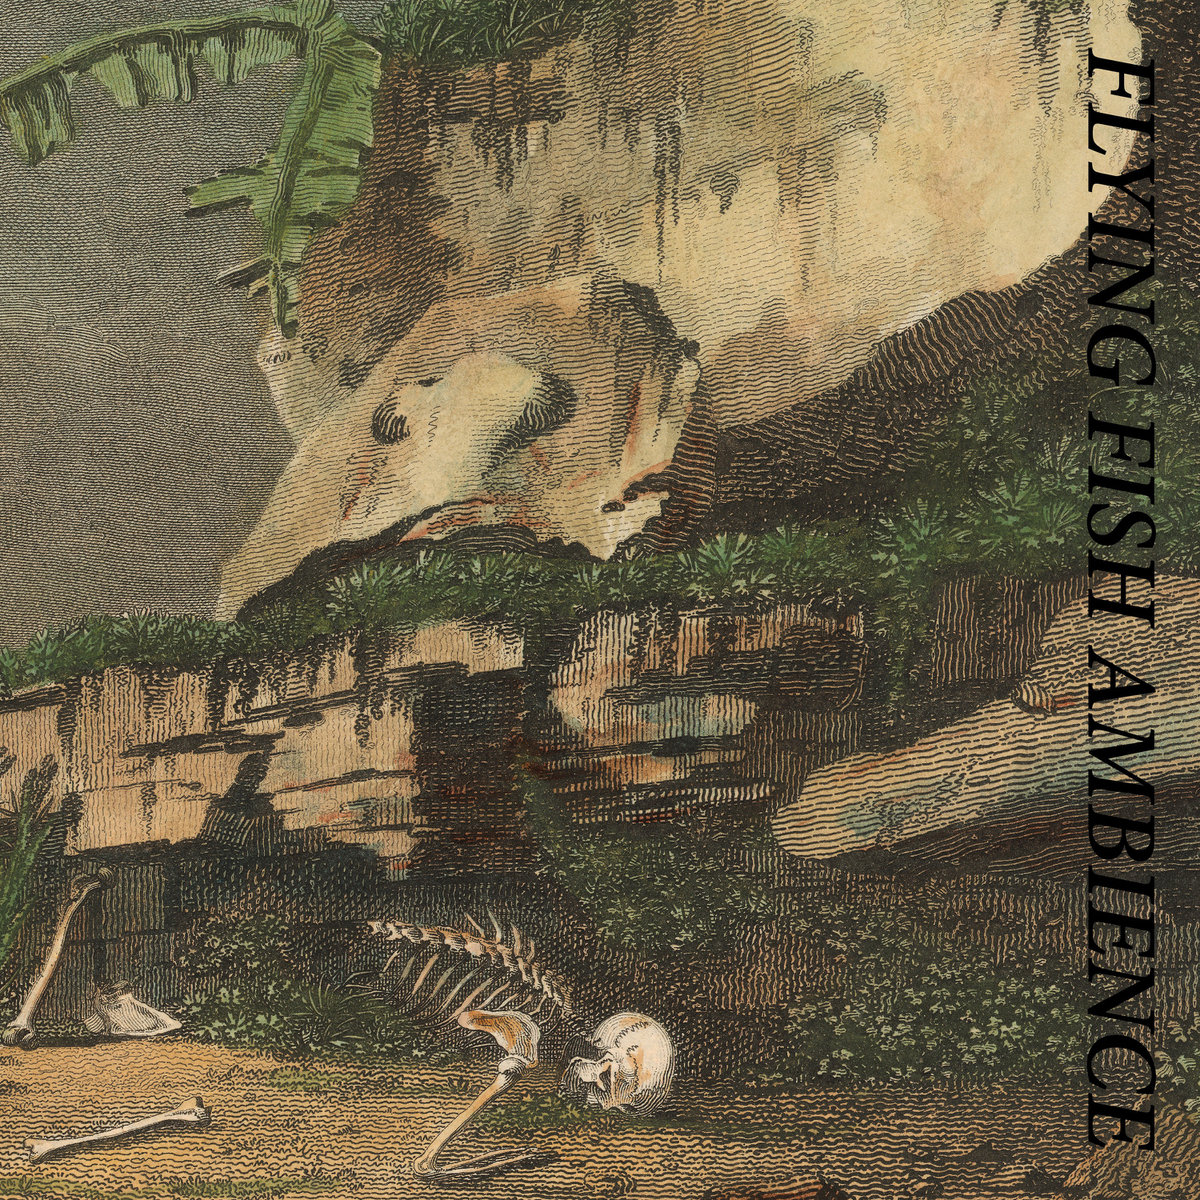 Flying Fish Ambience, by Rainforest Spiritual Enslavement